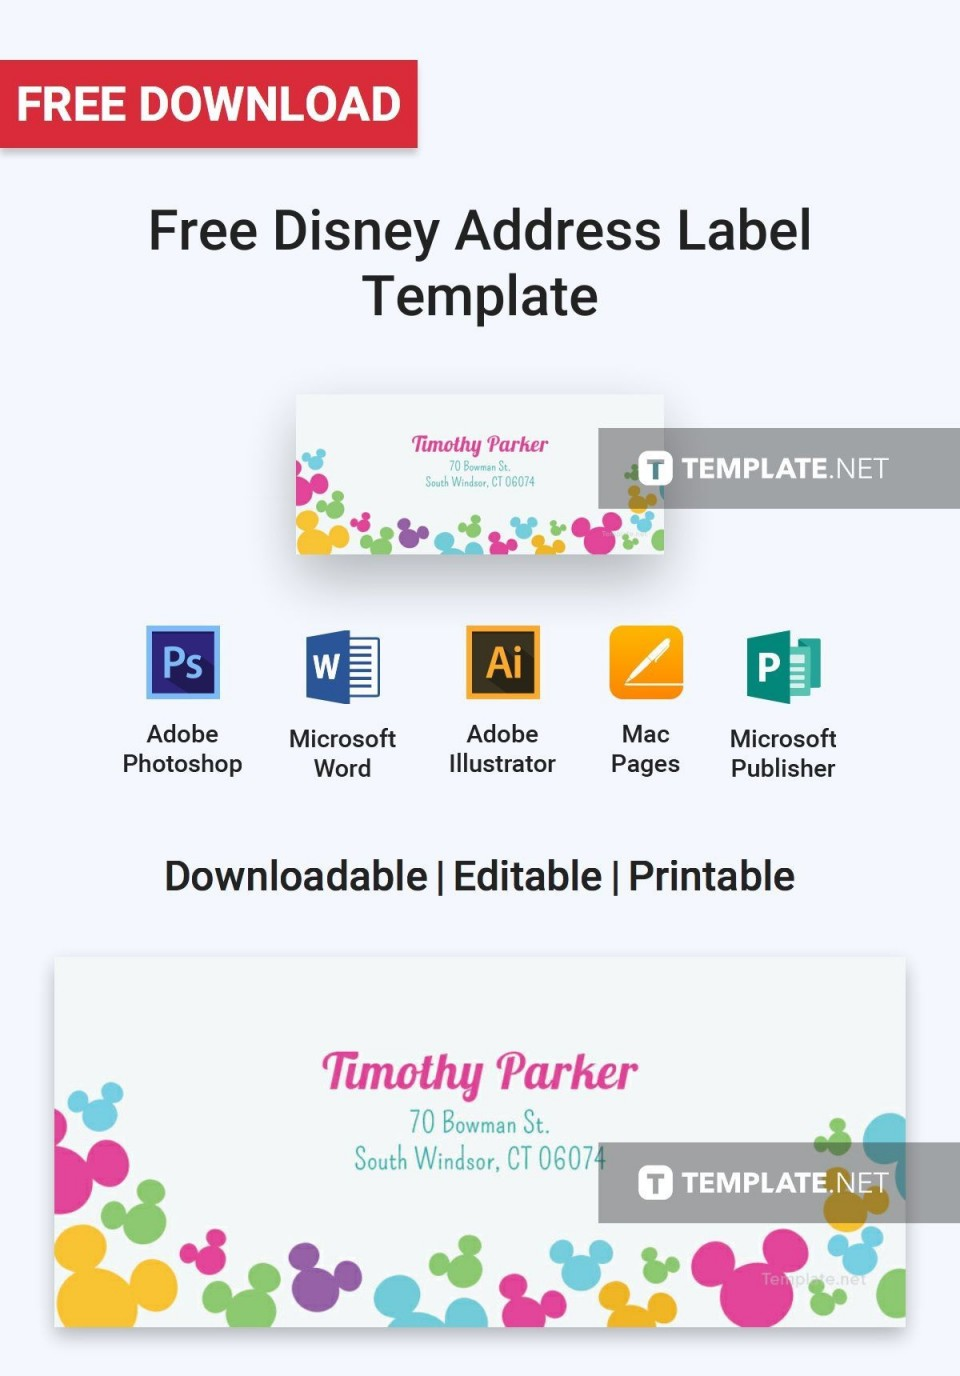 000 Frightening Addres Label Template For Mac Page Idea  Return Avery 5160960